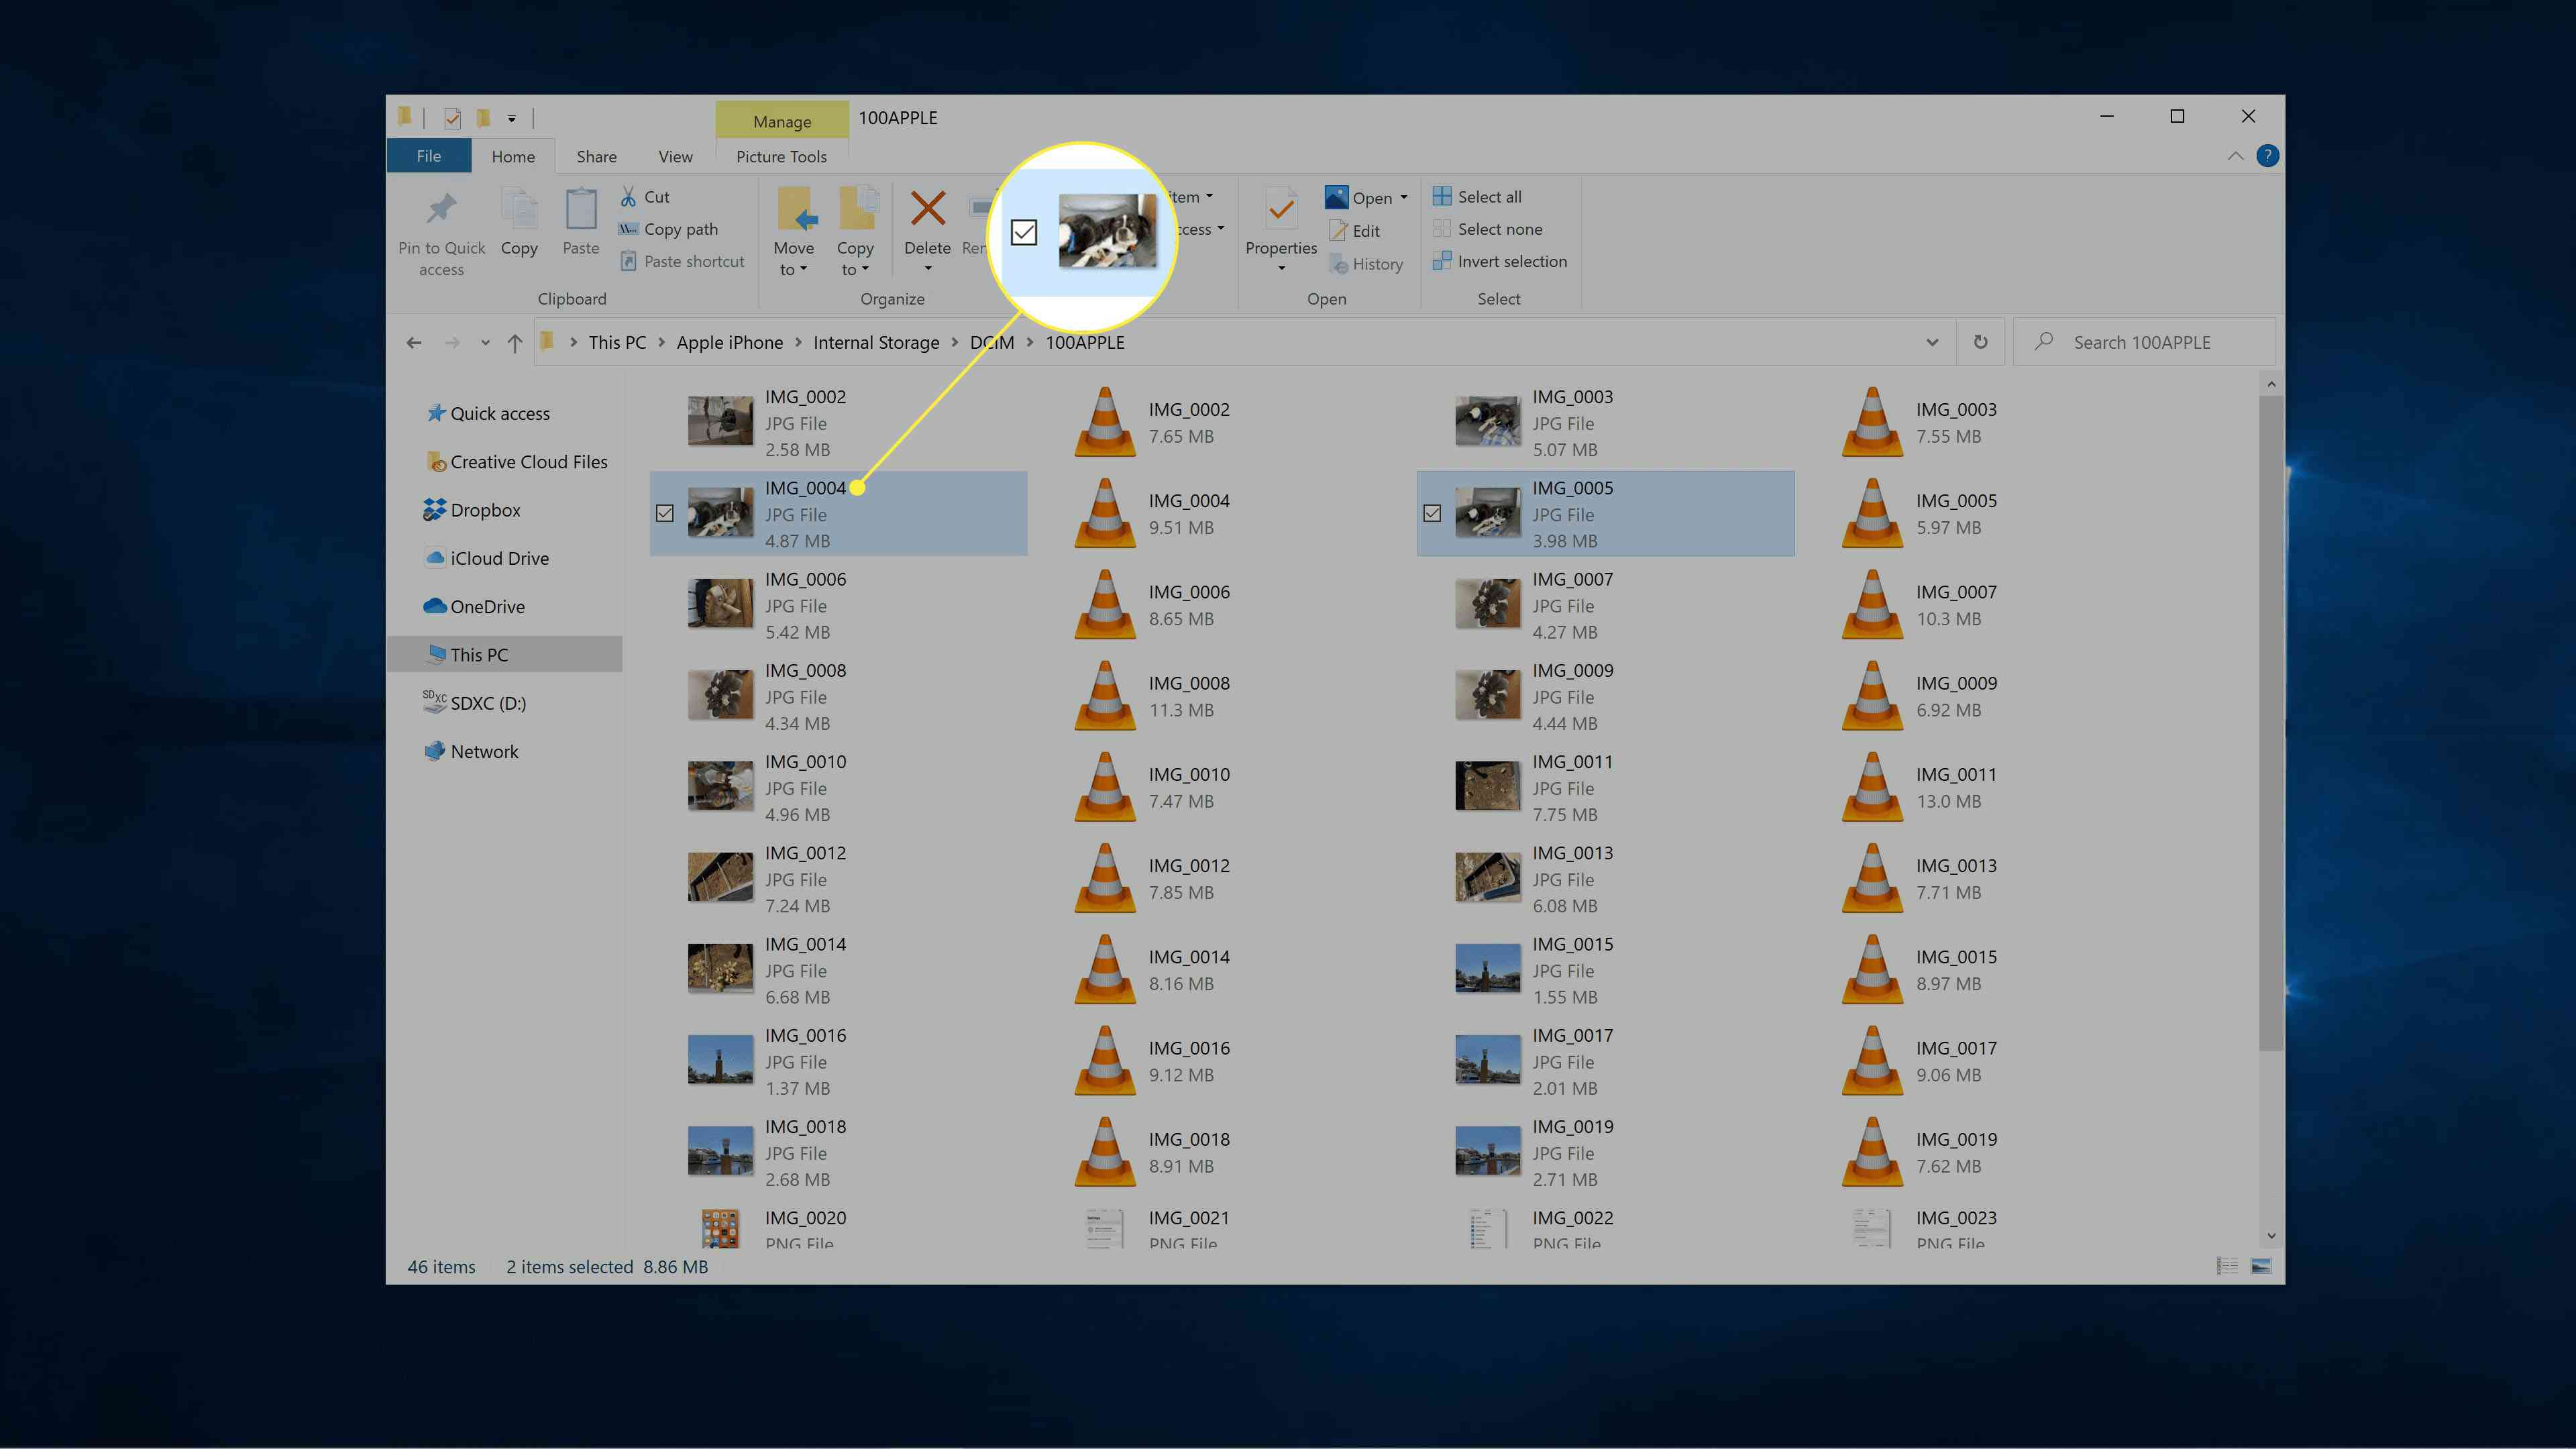 Files selected from iPhone internal storage on Windows.